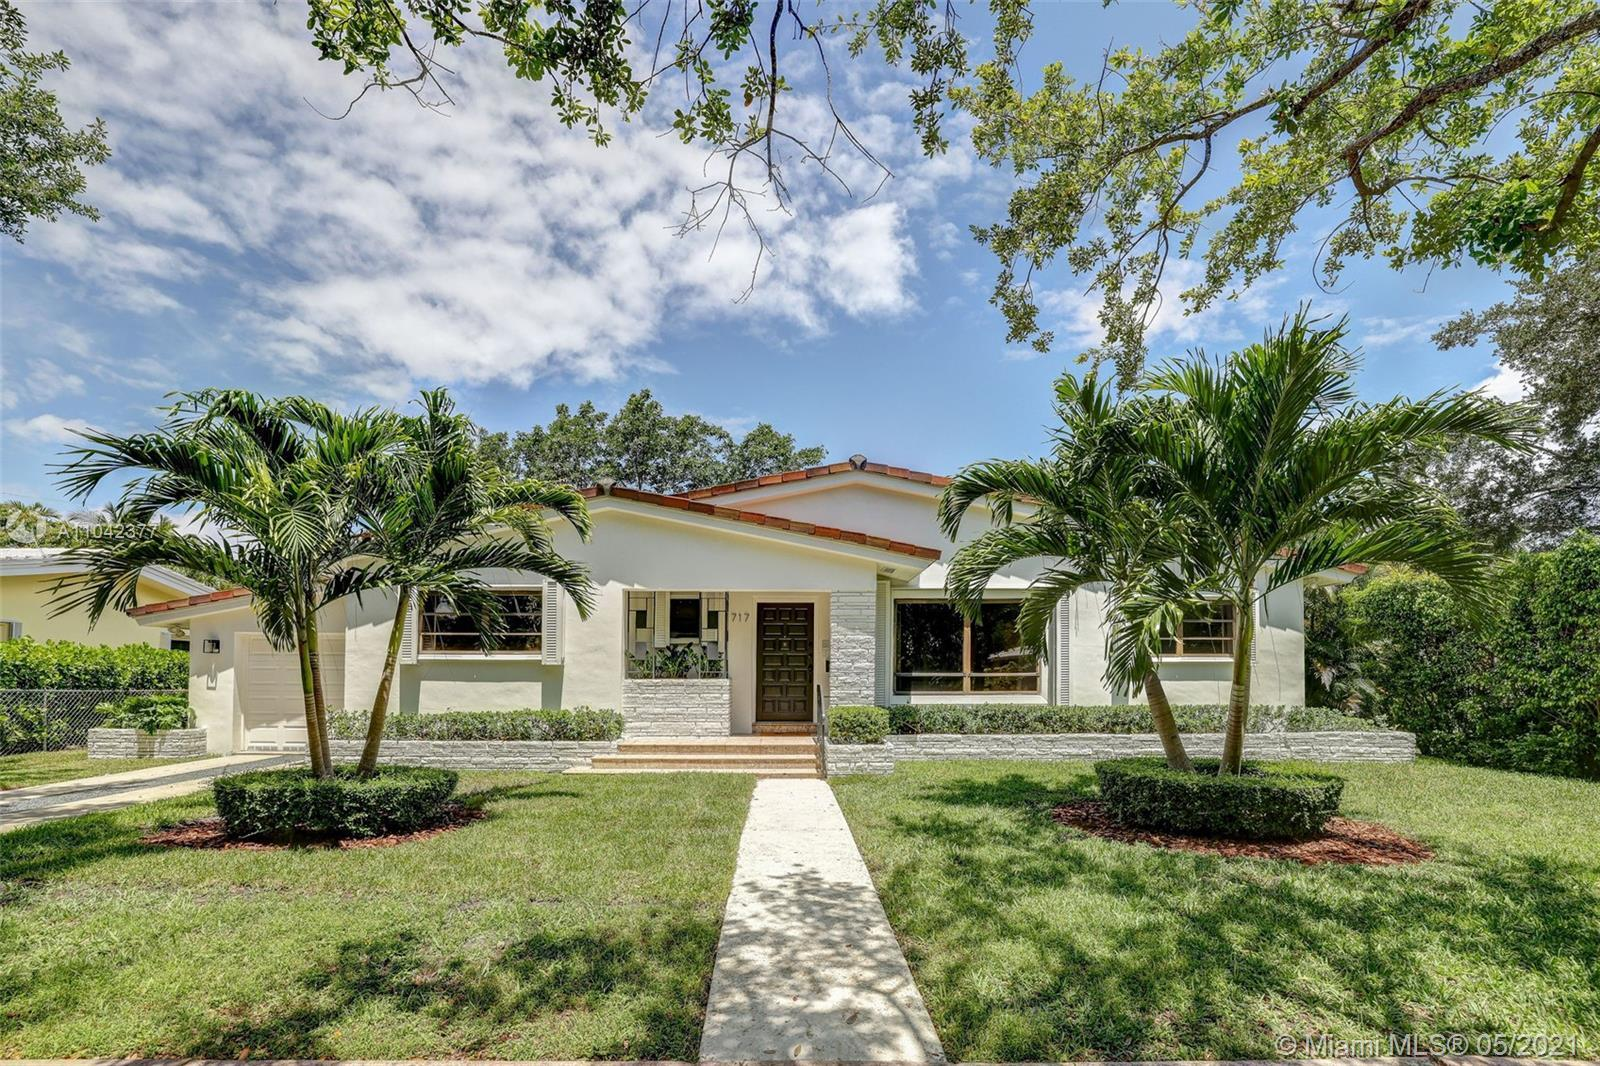 A perfect family home on a quiet tree-lined street in Coral Gables. 4 large bedrooms, 3 full baths,